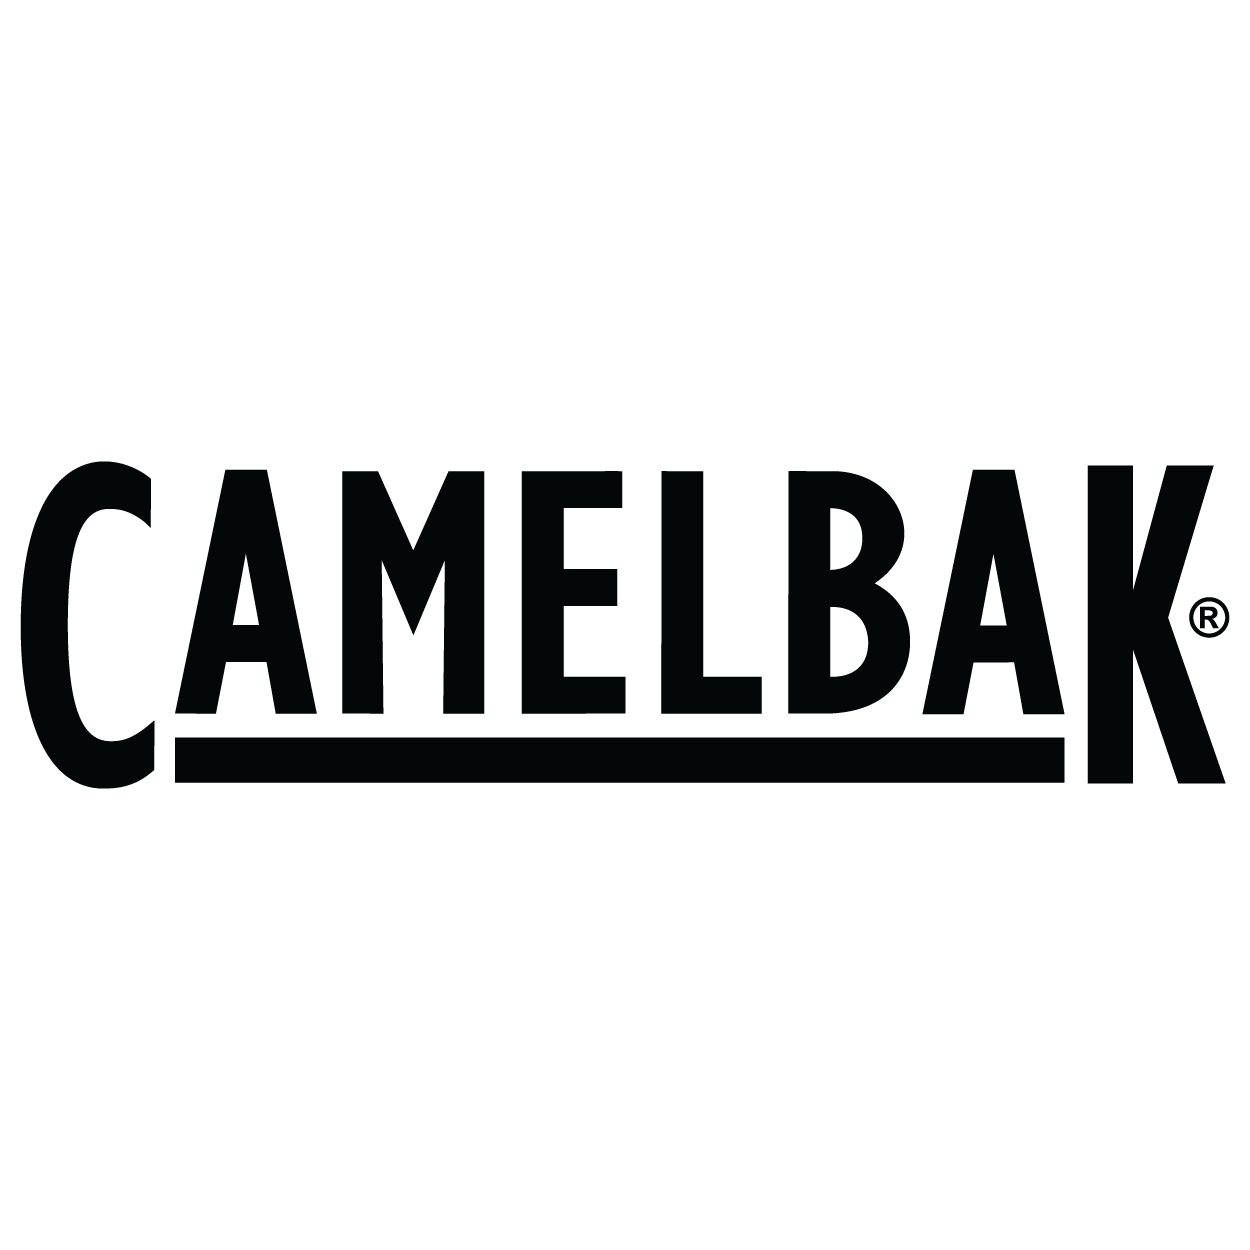 Camelbak Logo - Popular Brand Promotional Products